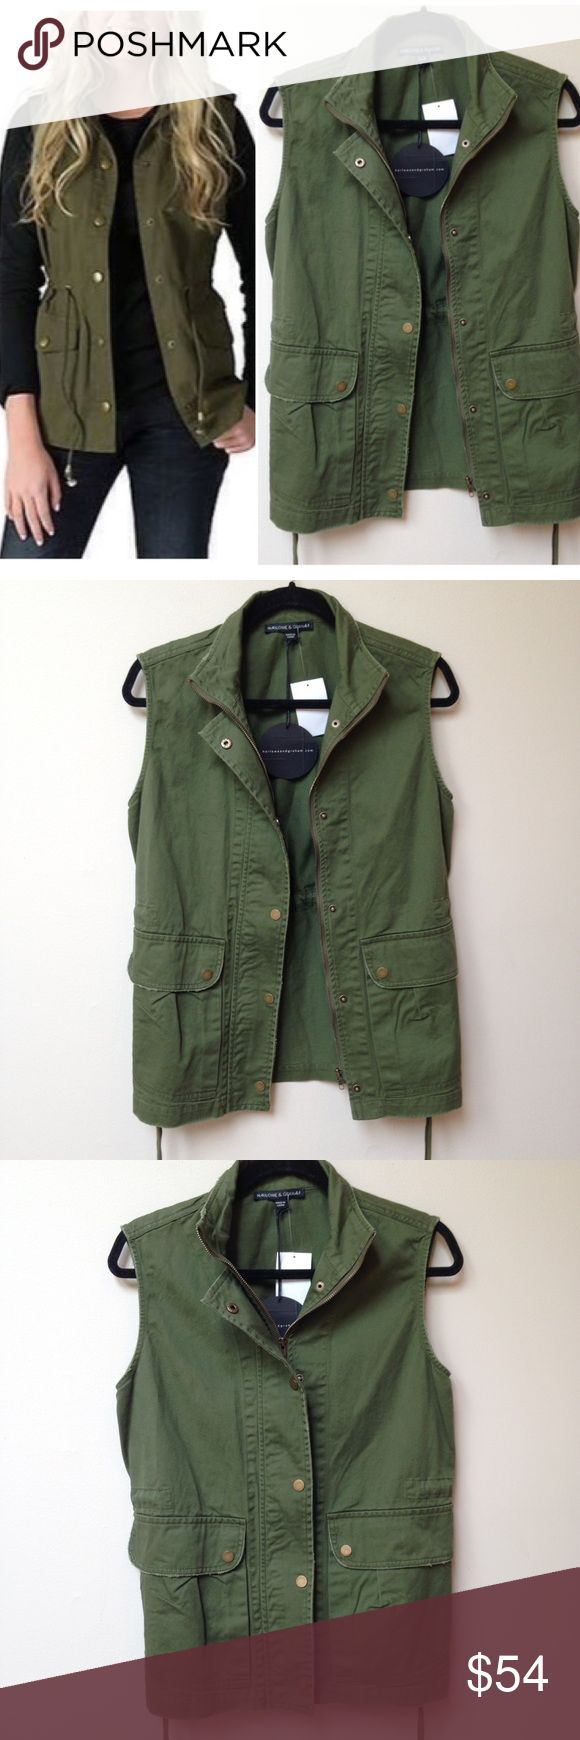 NWT Army Green Cargo Vest Brand new with tags army green cargo utility vest. Features side pockets and an adjustable drawstring waist. Perfect for layering with fall sweaters and tees!   Brand is Harlowe & Graham. Harlowe and Graham Jackets & Coats Vests